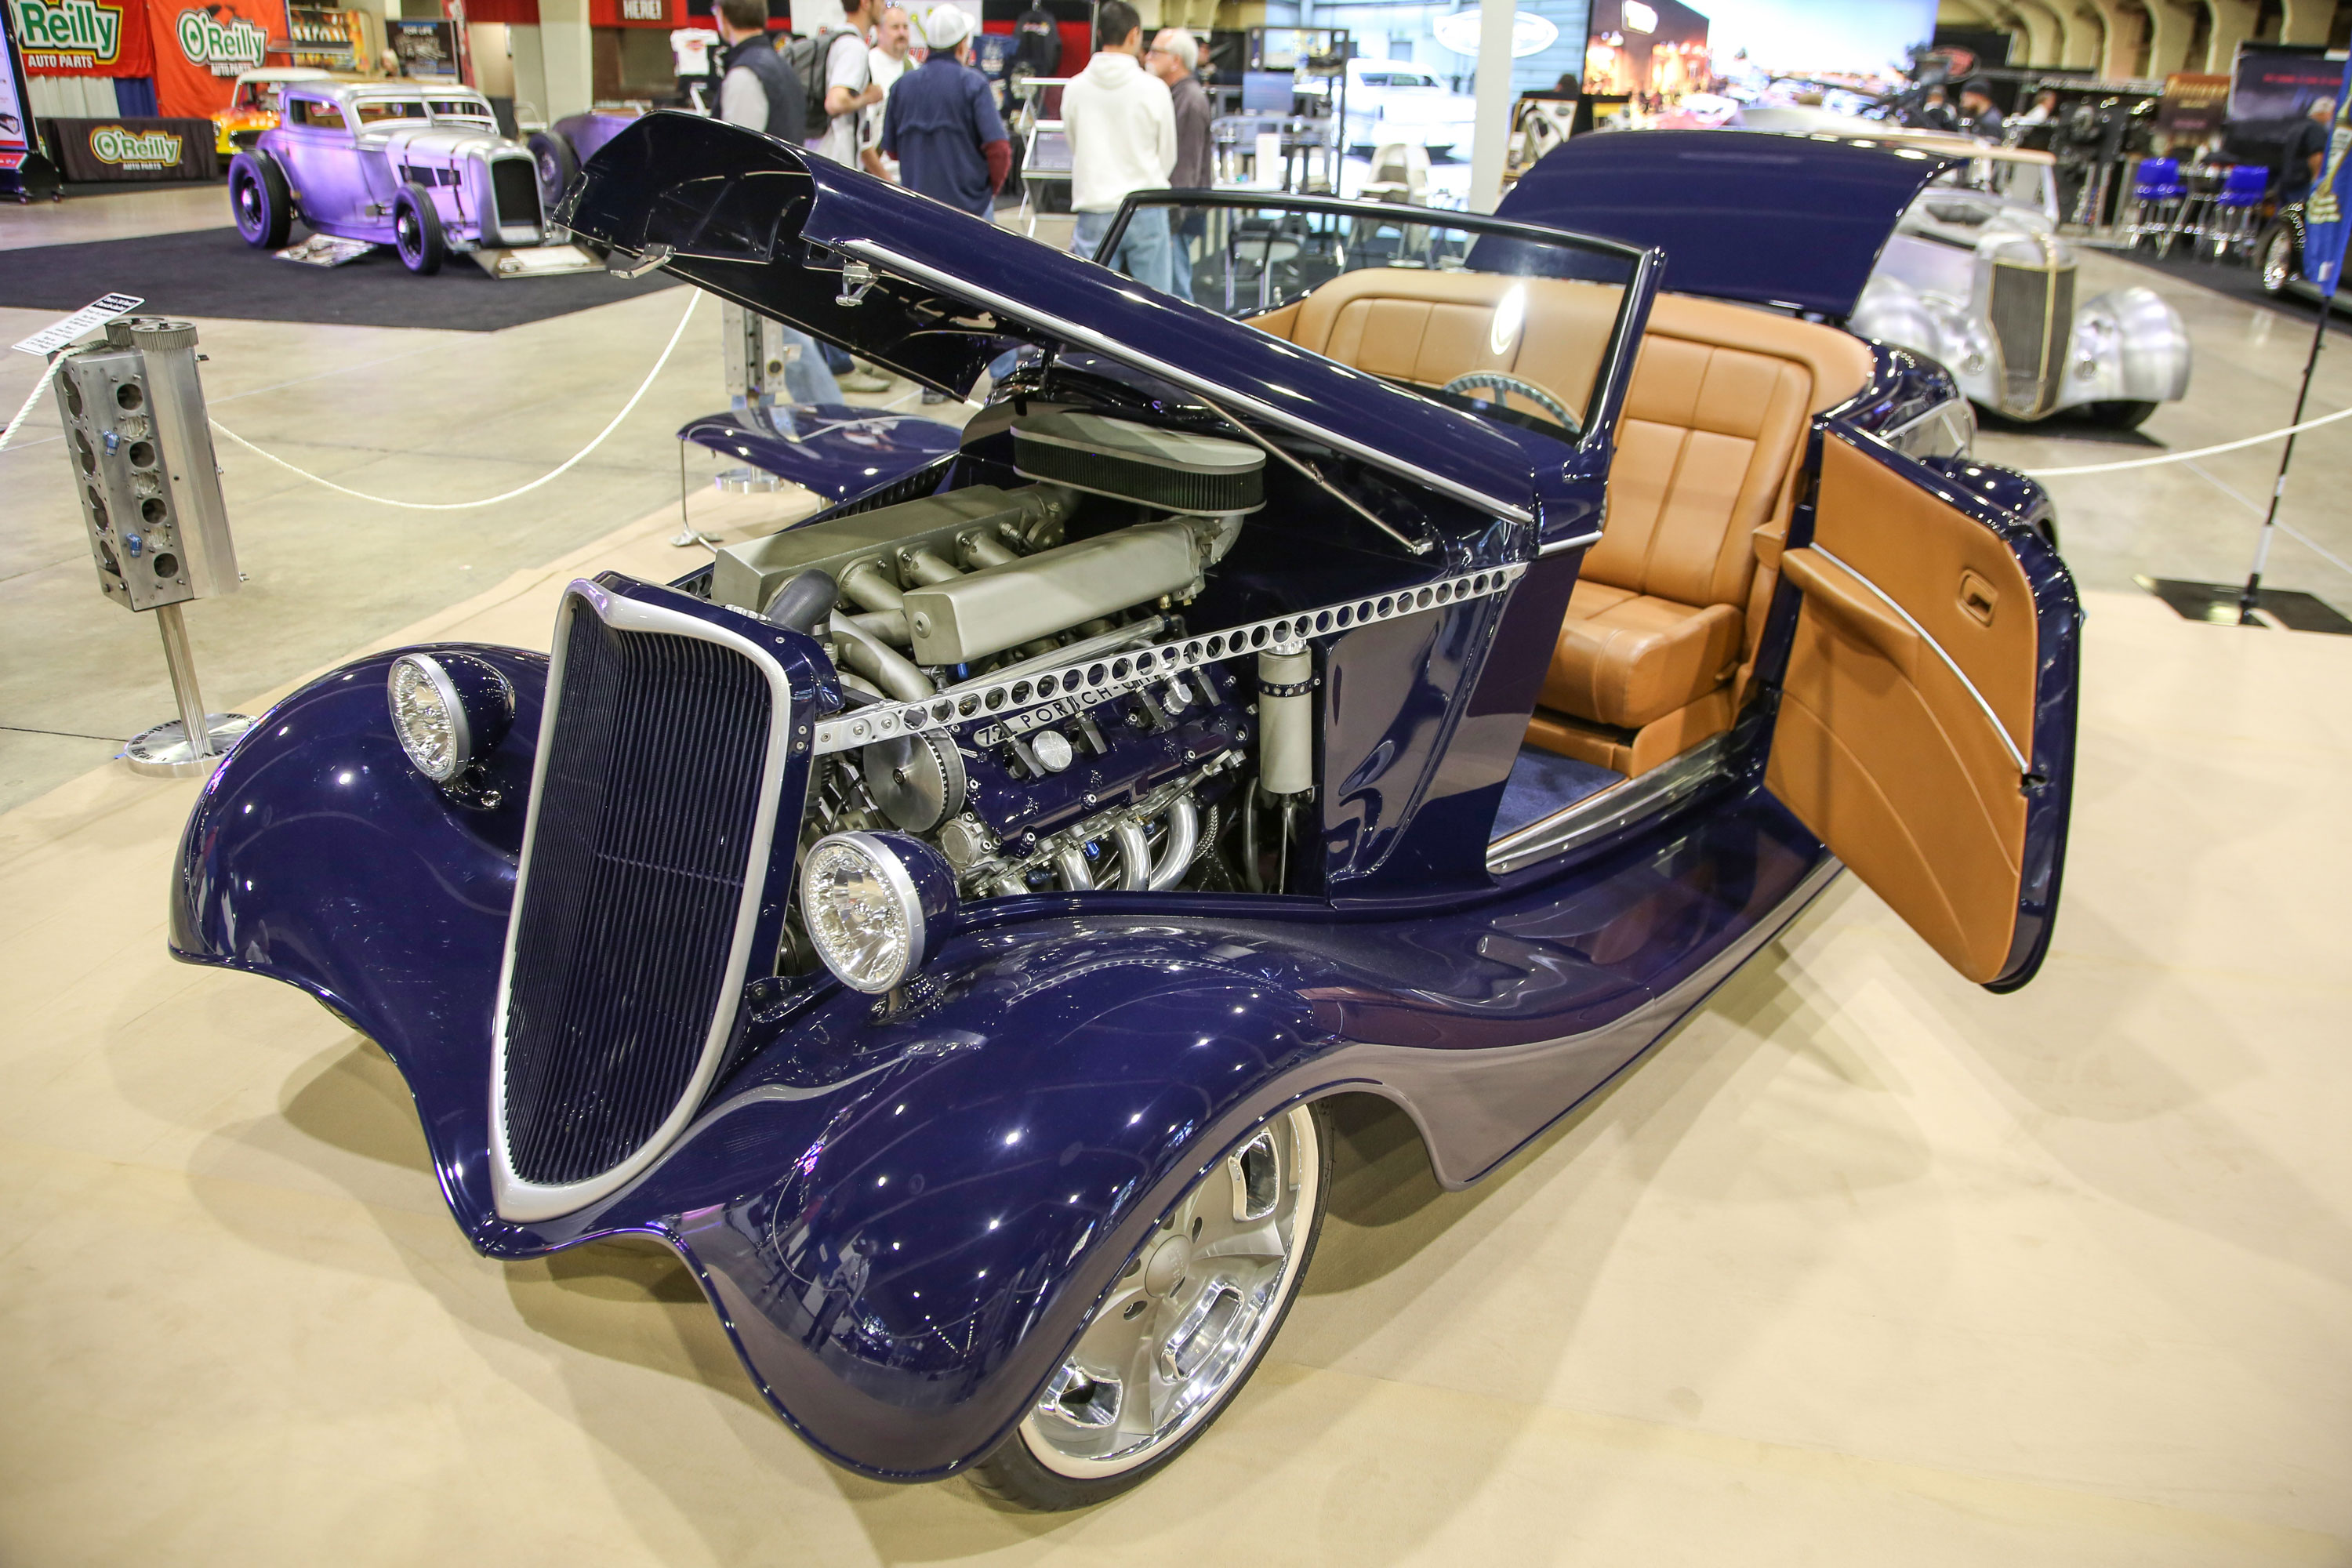 Pete Aardema's '34 Ford